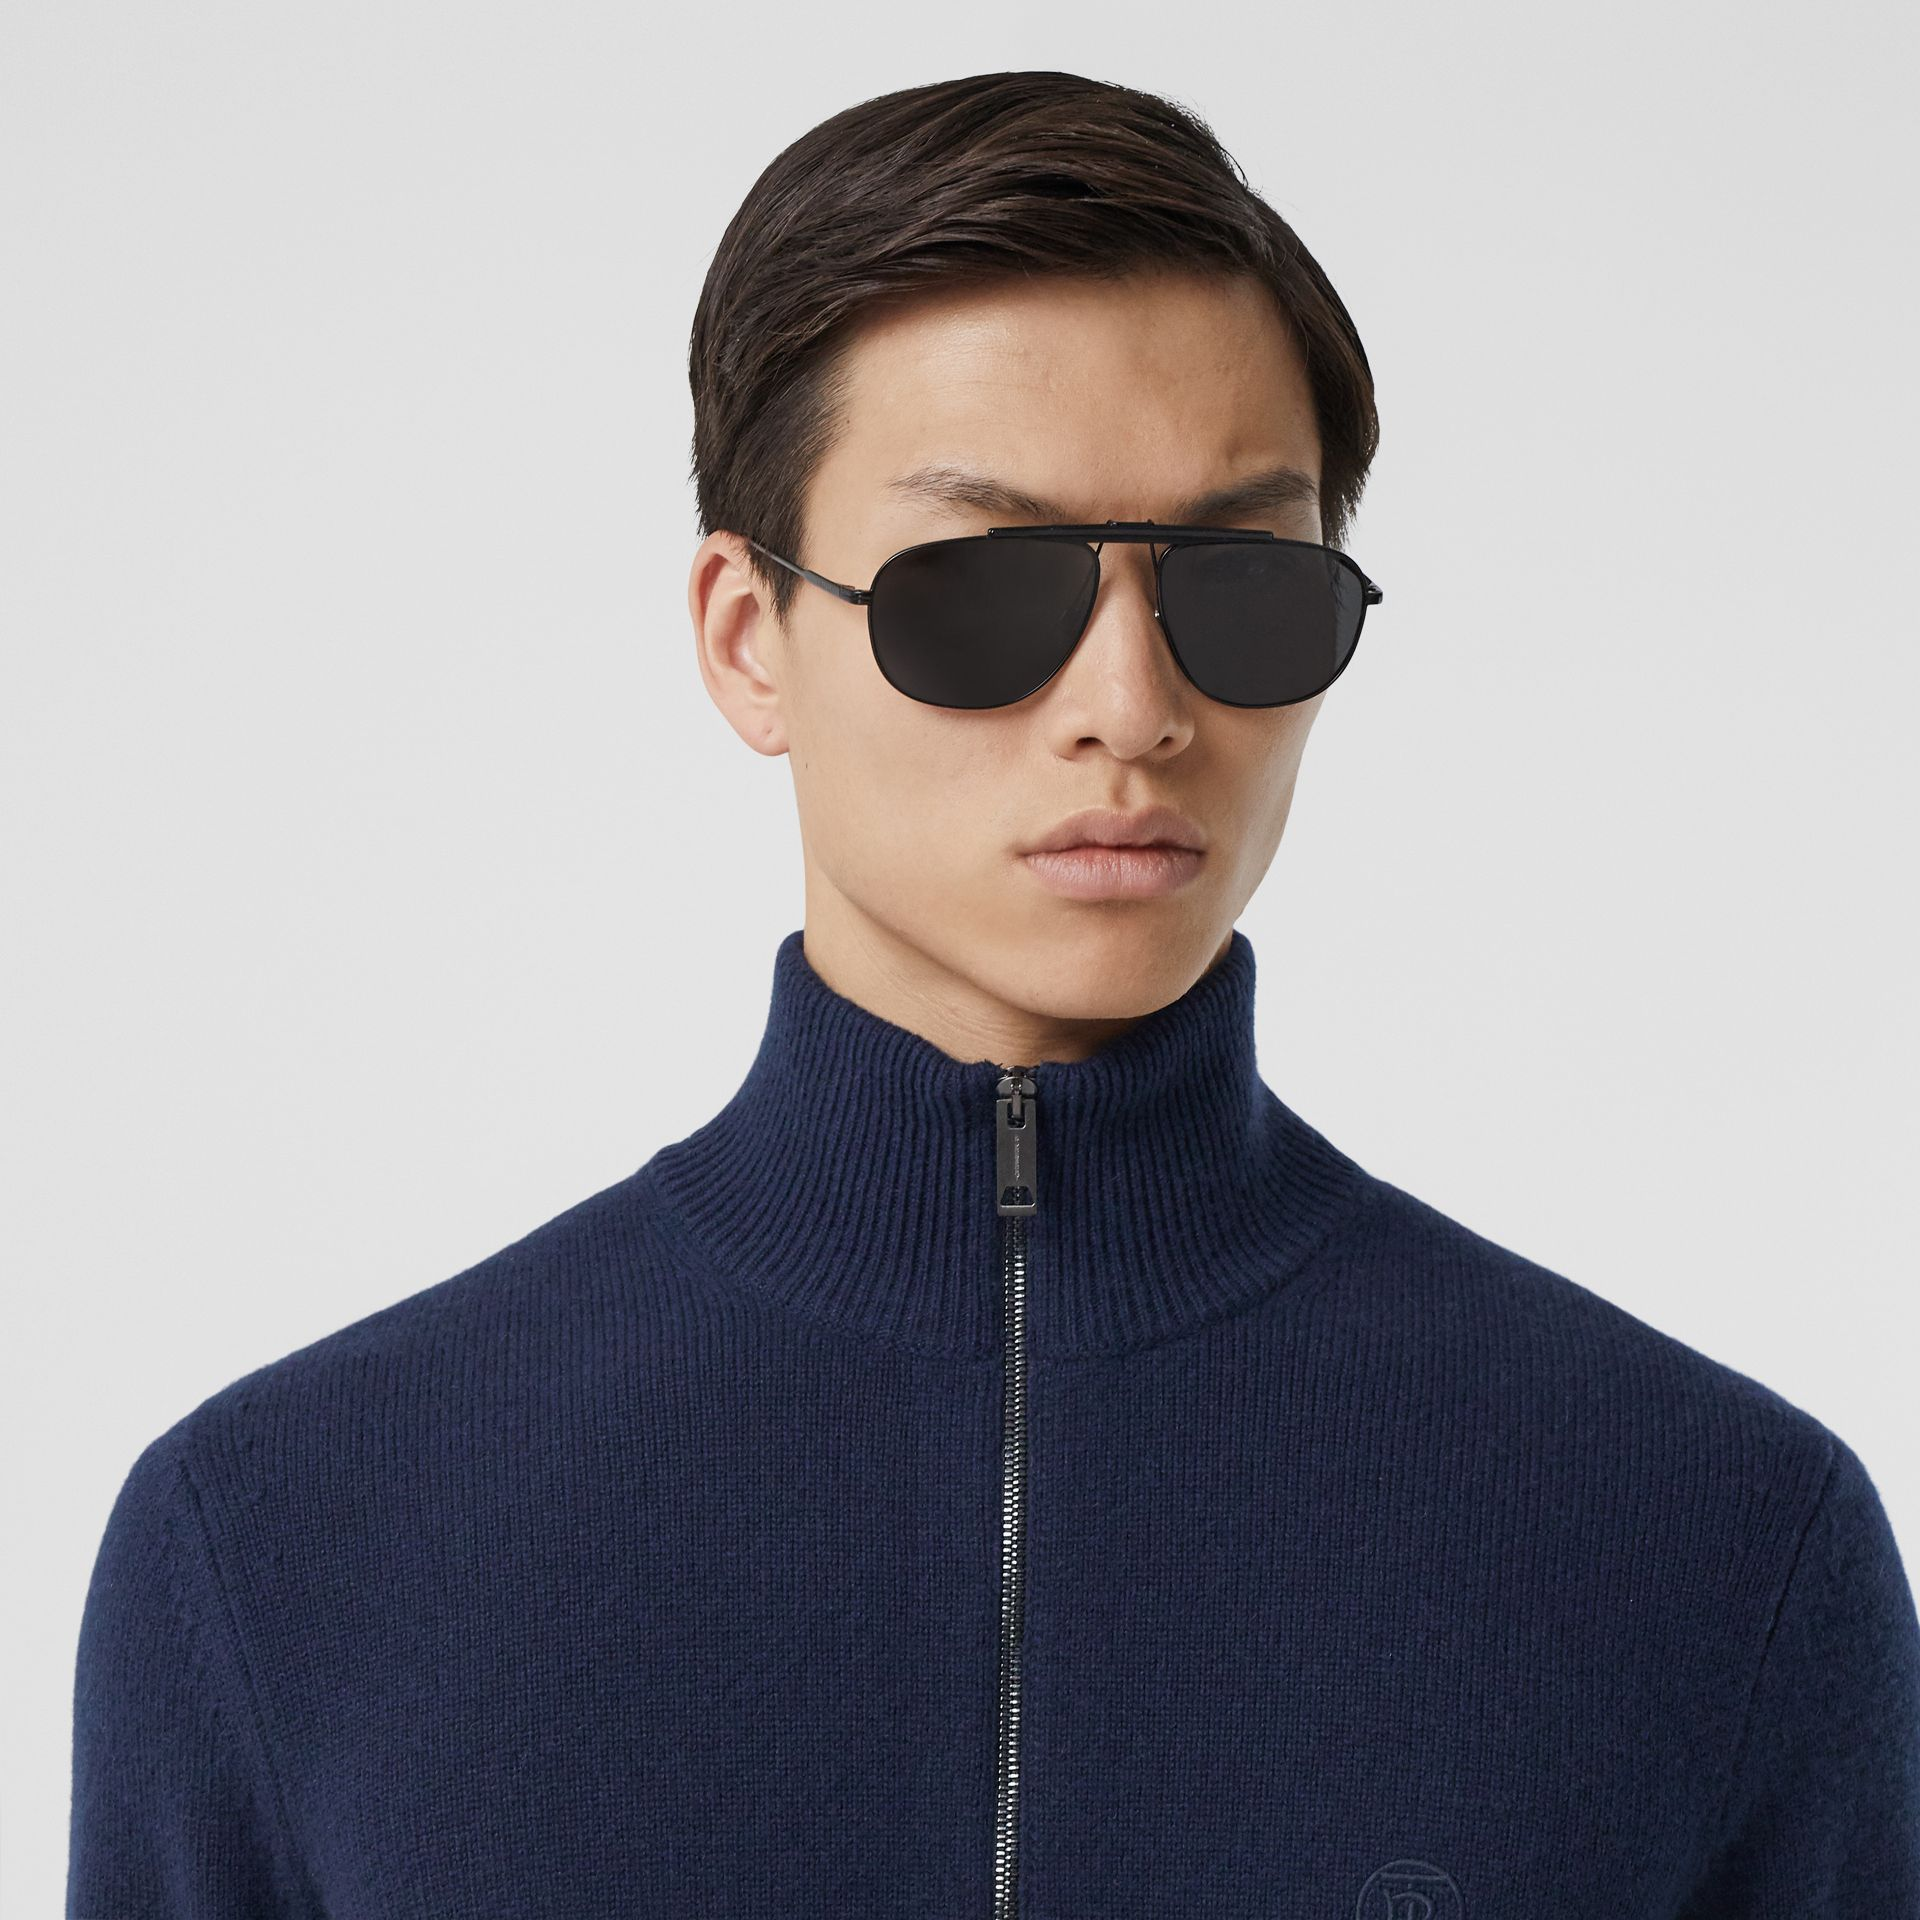 Monogram Motif Cashmere Funnel Neck Sweater in Navy - Men | Burberry - gallery image 1